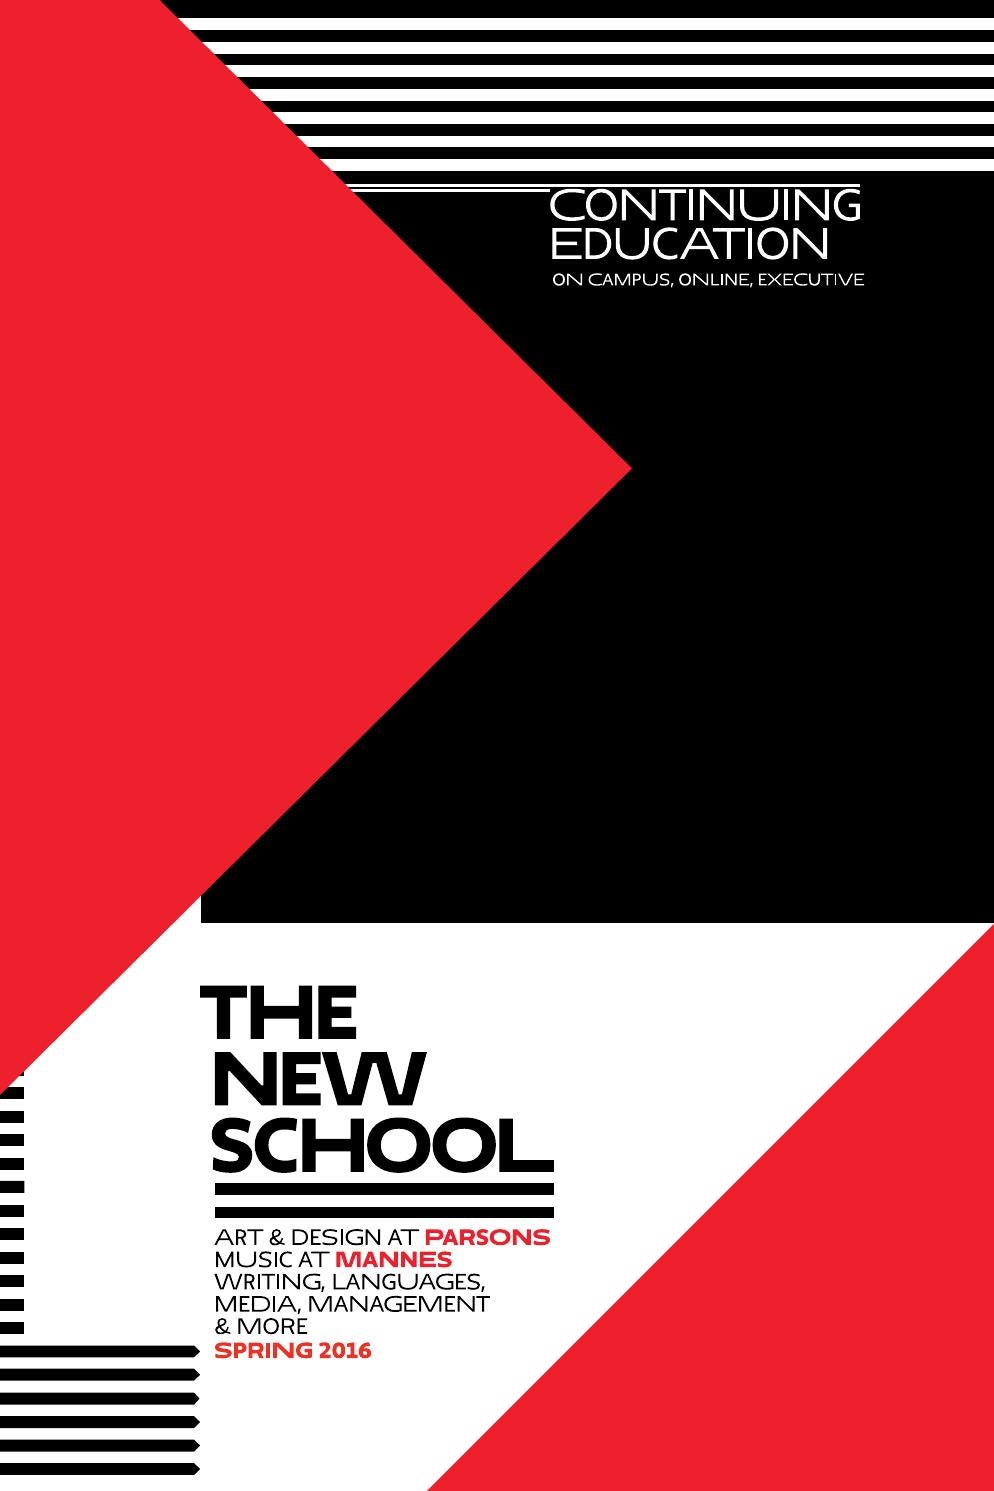 Continuing Education Spring 2016 The New School By